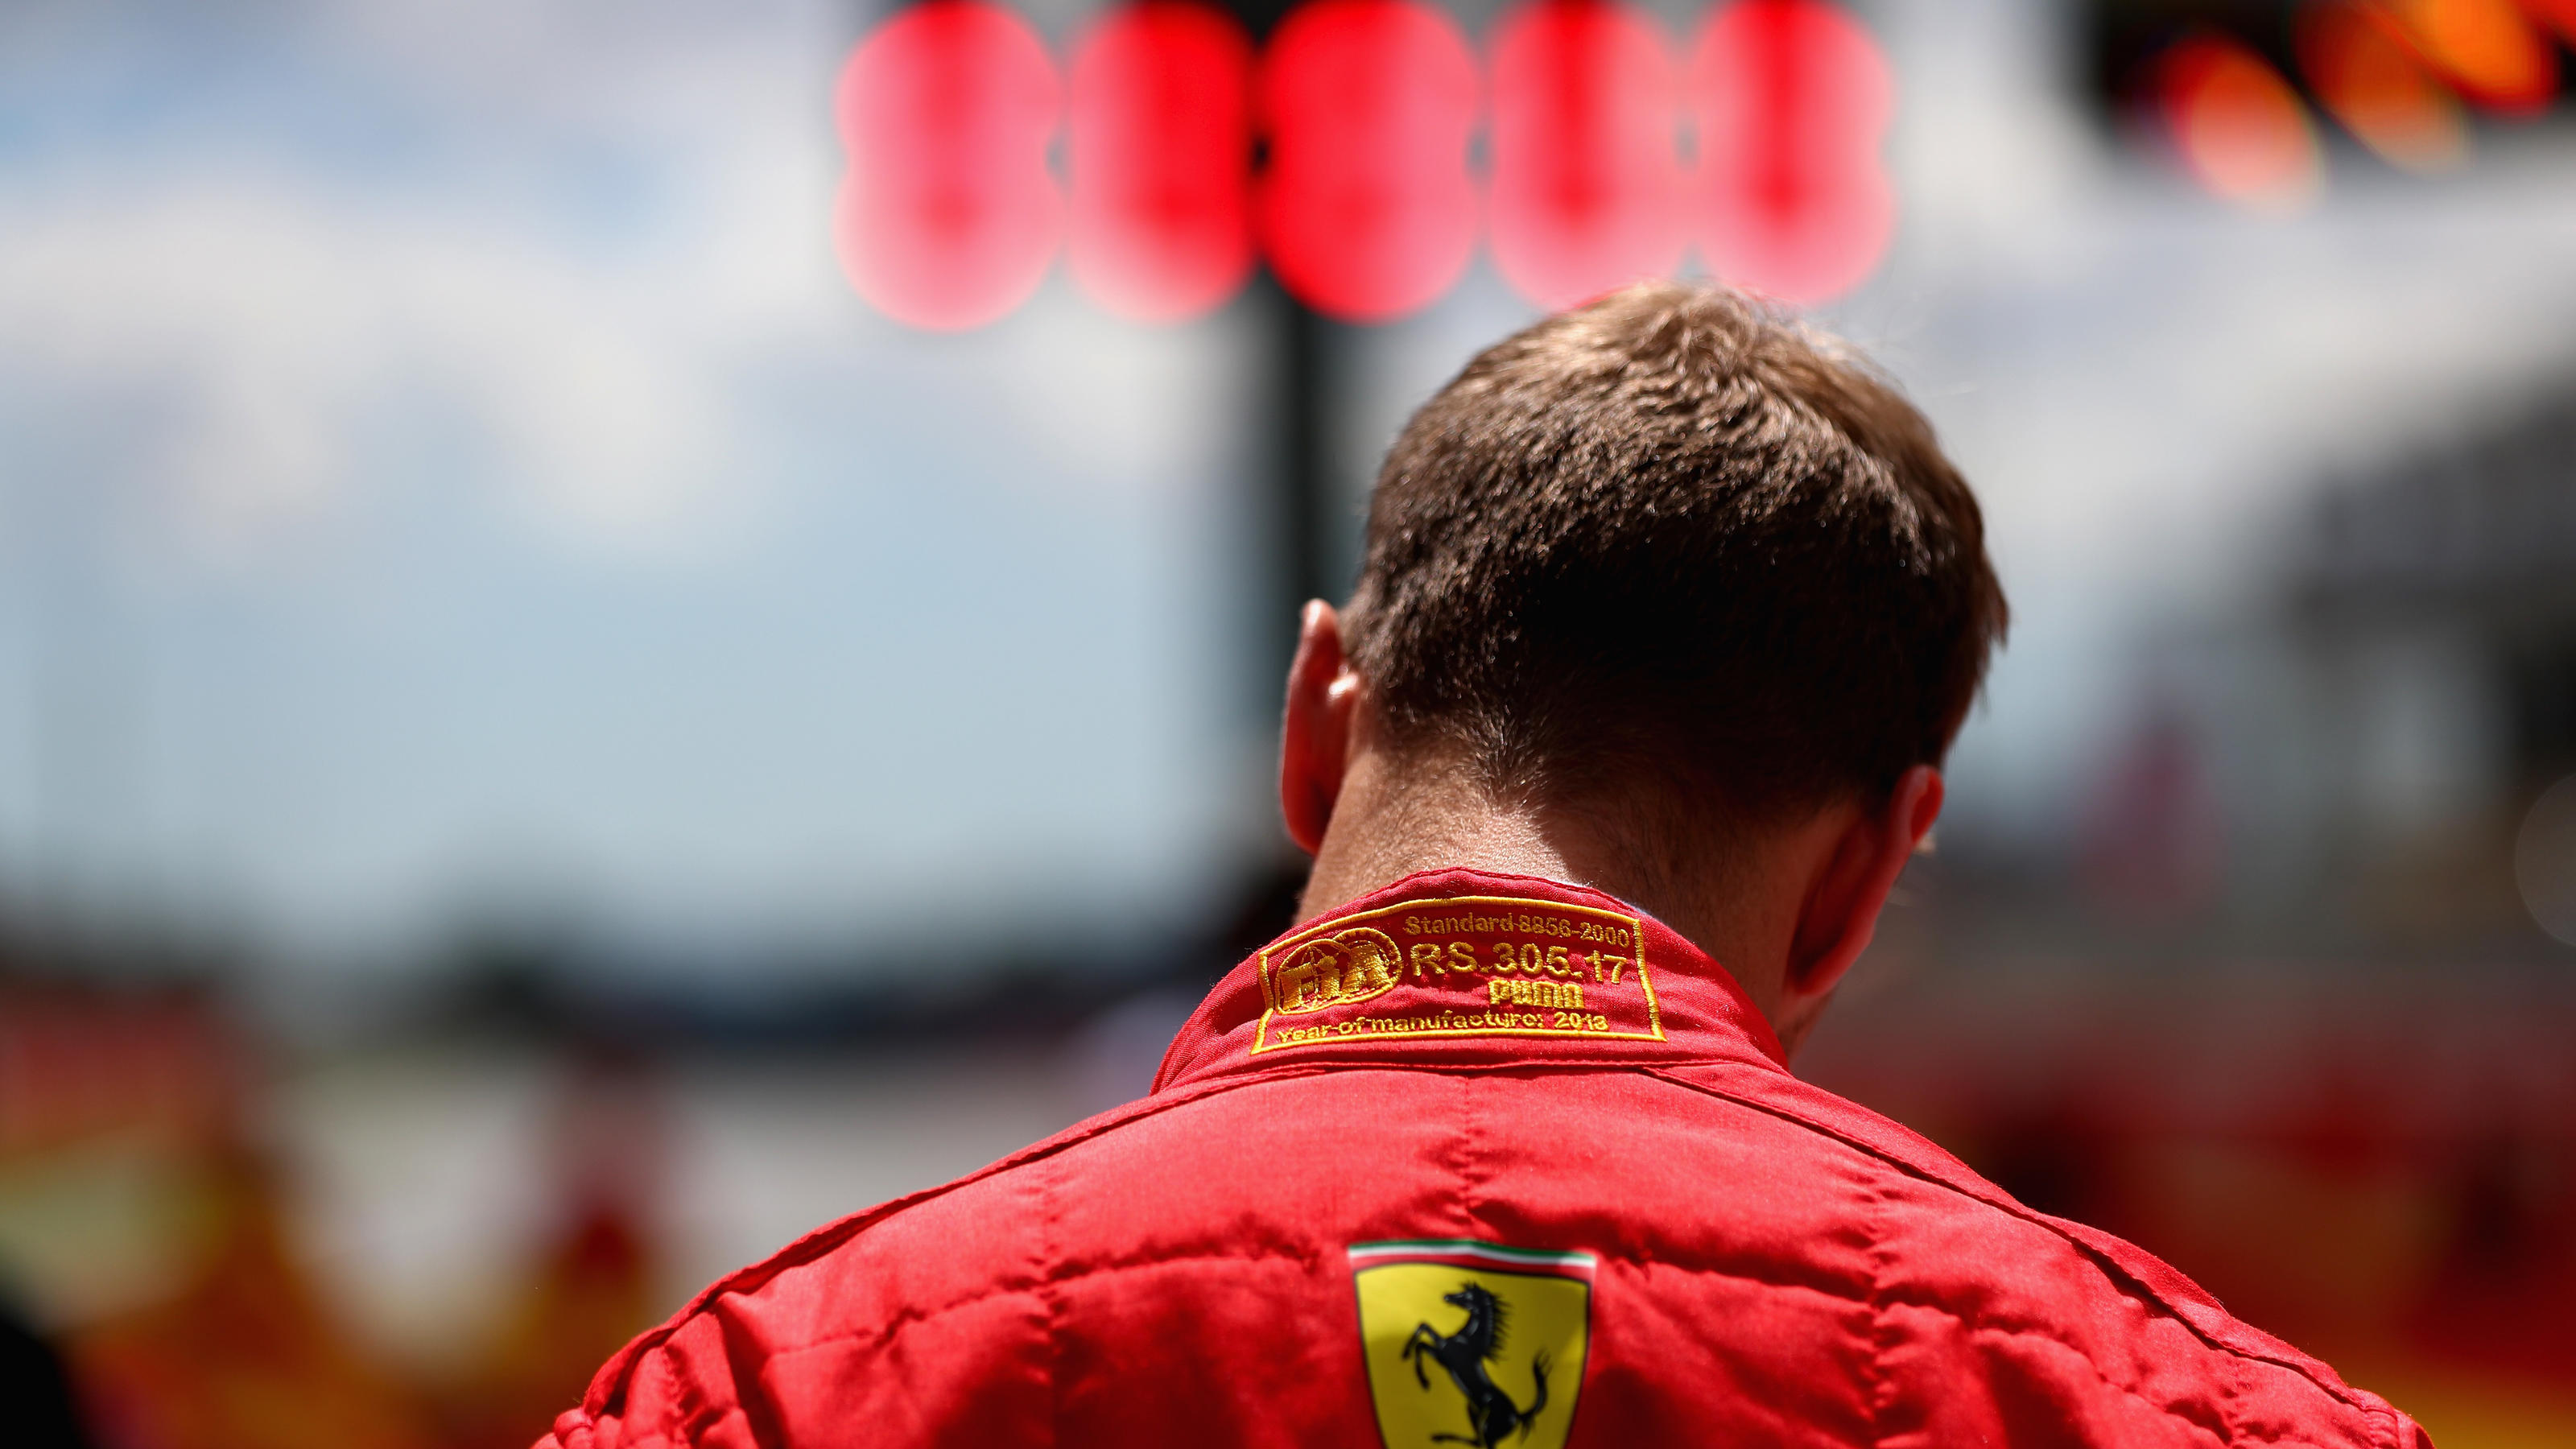 MONTMELO, SPAIN - MAY 13: Sebastian Vettel of Germany and Ferrari on the grid before the Spanish Formula One Grand Prix at Circuit de Catalunya on May 13, 2018 in Montmelo, Spain.  (Photo by Mark Thompson/Getty Images)